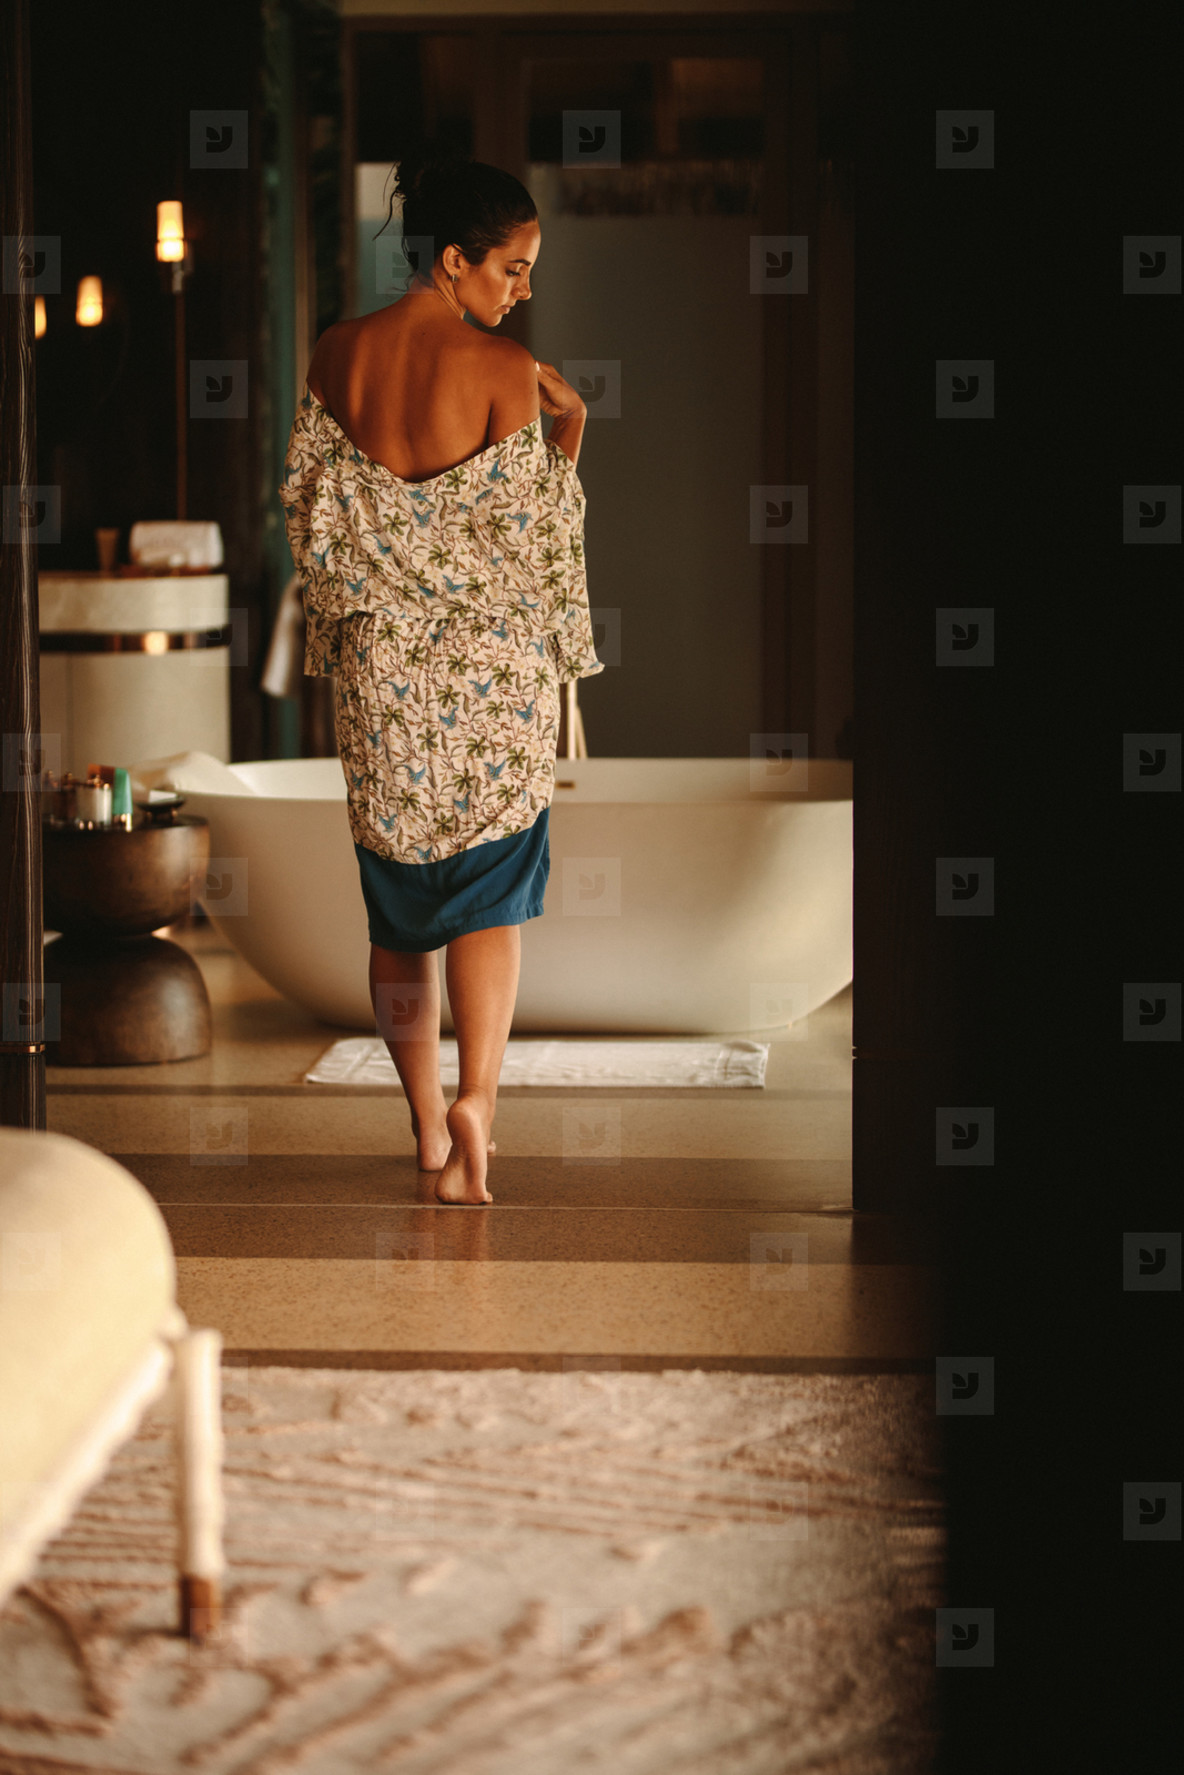 Woman at a luxury spa for a bath